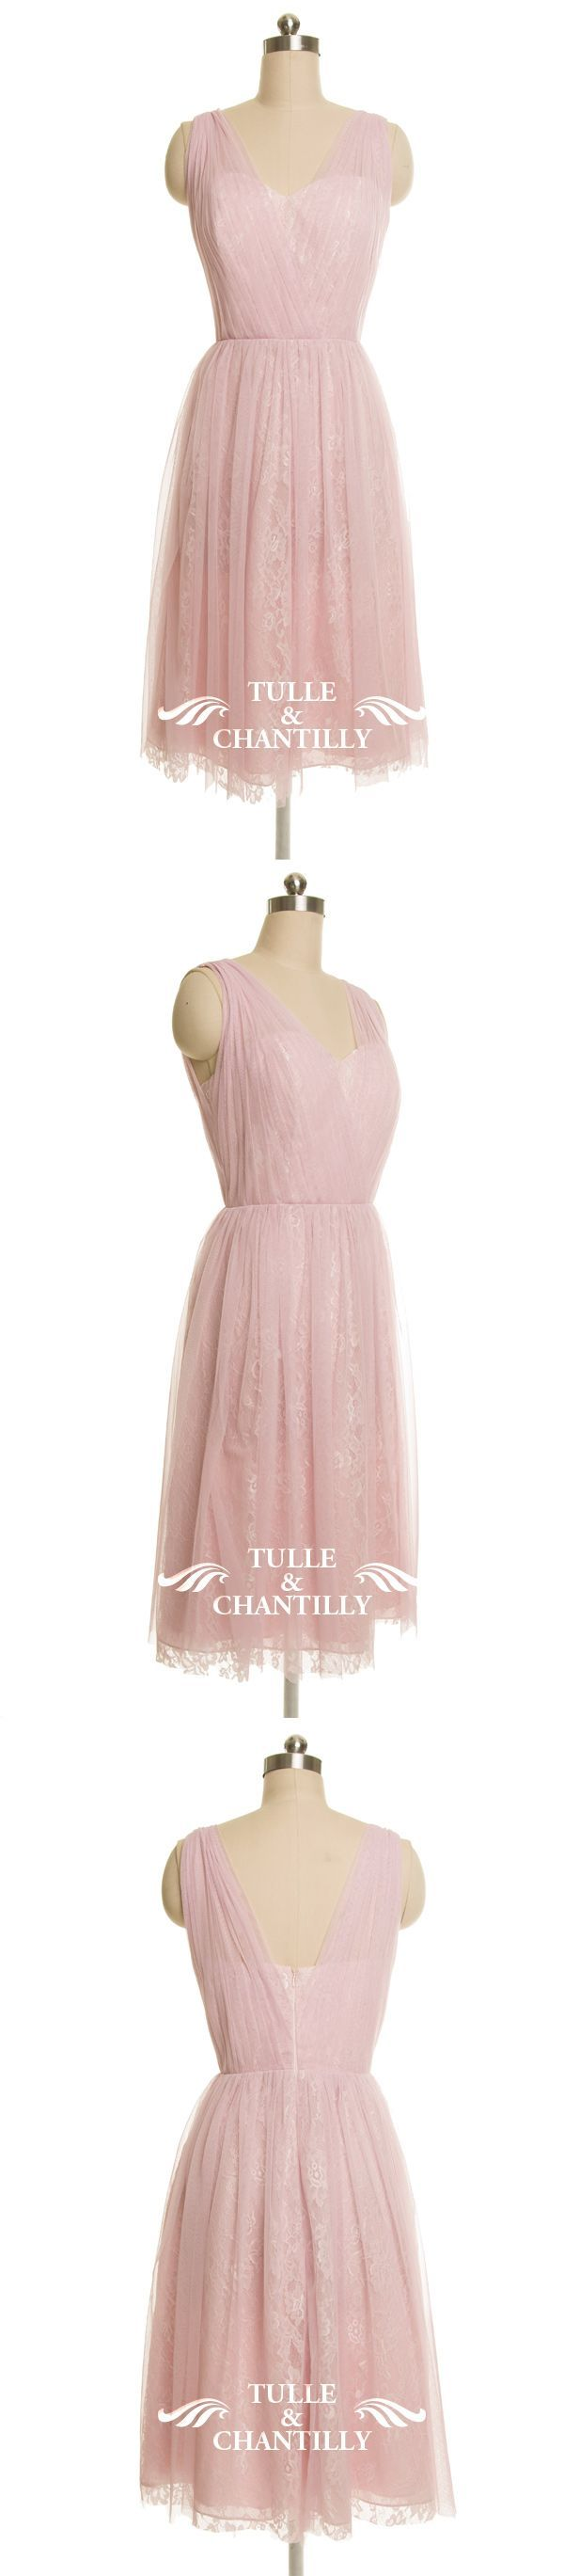 Pink cocktail dress for wedding  Sheer Sweetheart Tulle Knee Length Bridesmaids Dresses with Straps